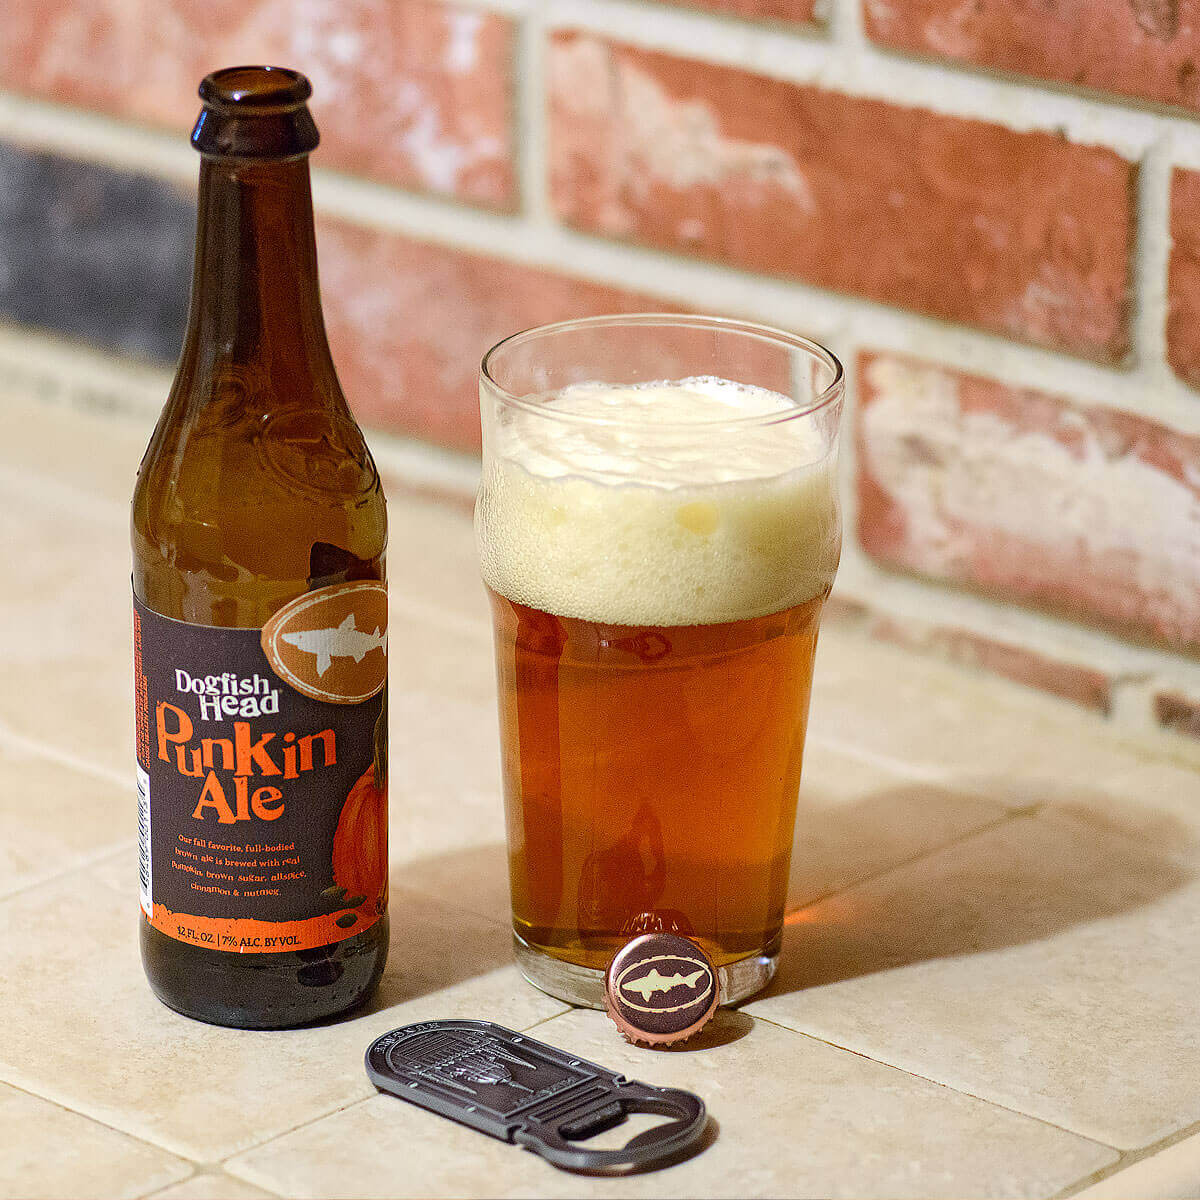 Punkin Ale is a Pumpkin Ale by Dogfish Head Craft Brewery that smacks the palate with booze, hops, pumpkin, and spices.